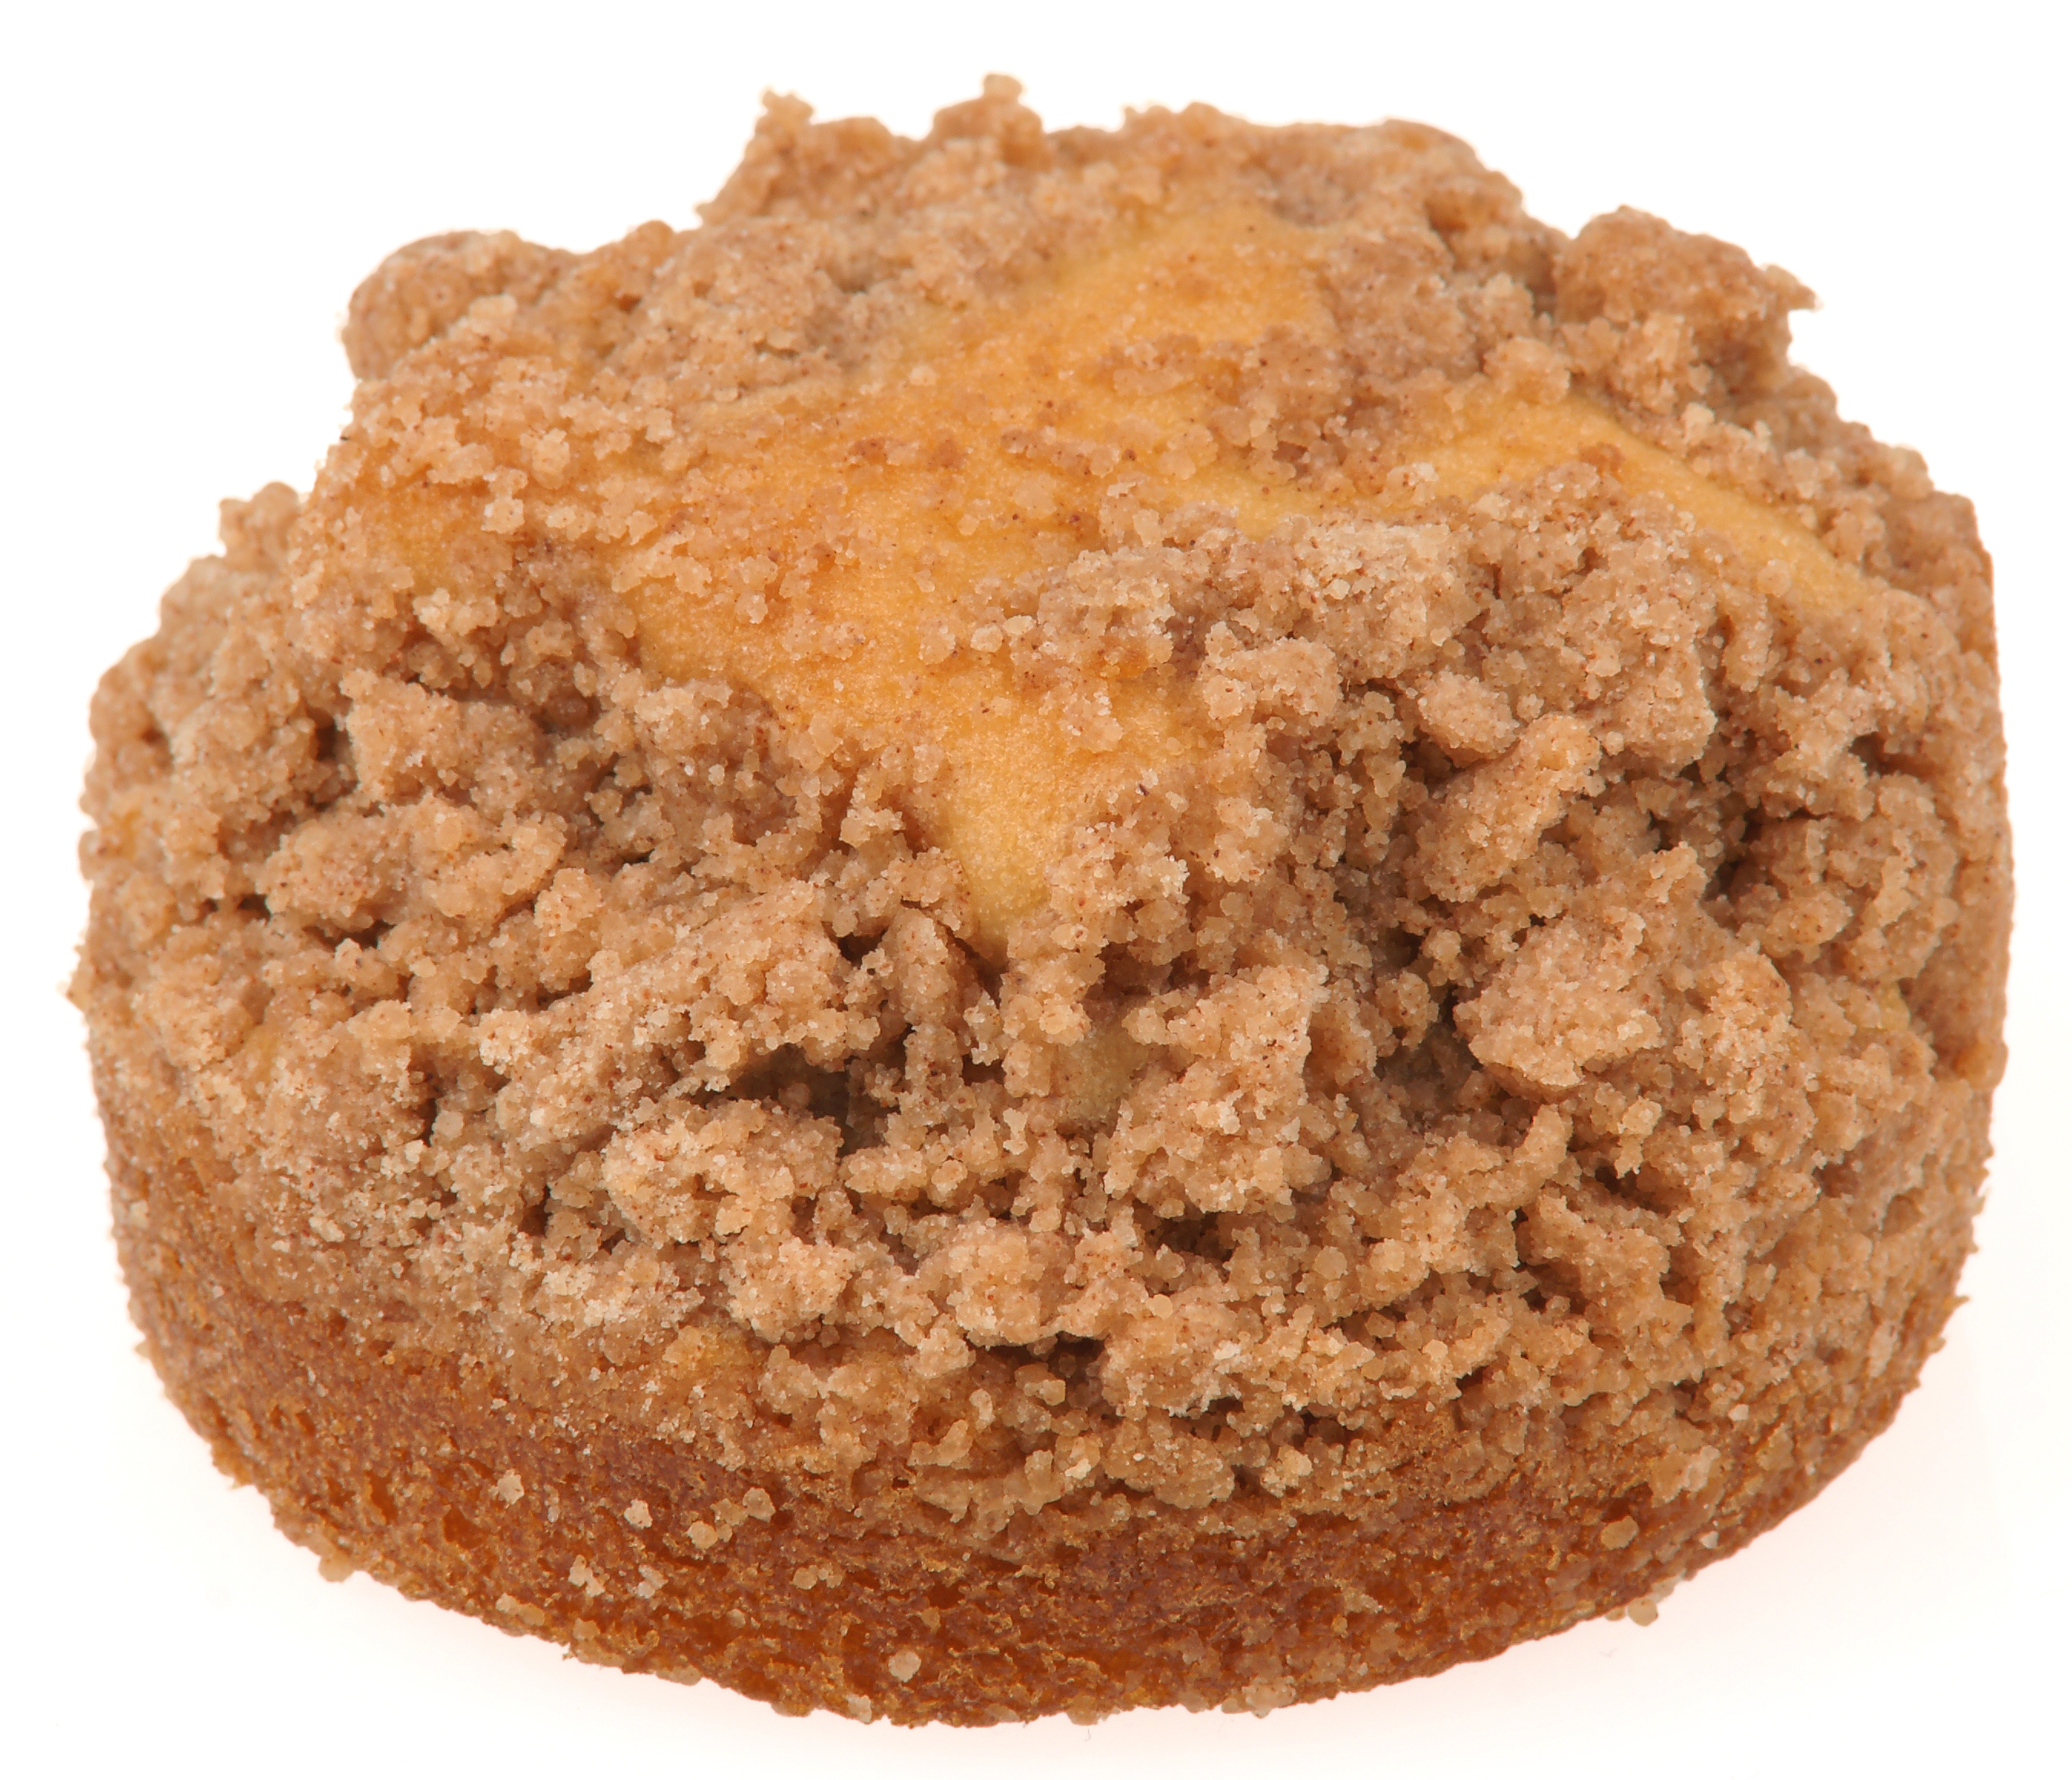 File:Drakes-Coffee-Cake.jpg - Wikimedia Commons